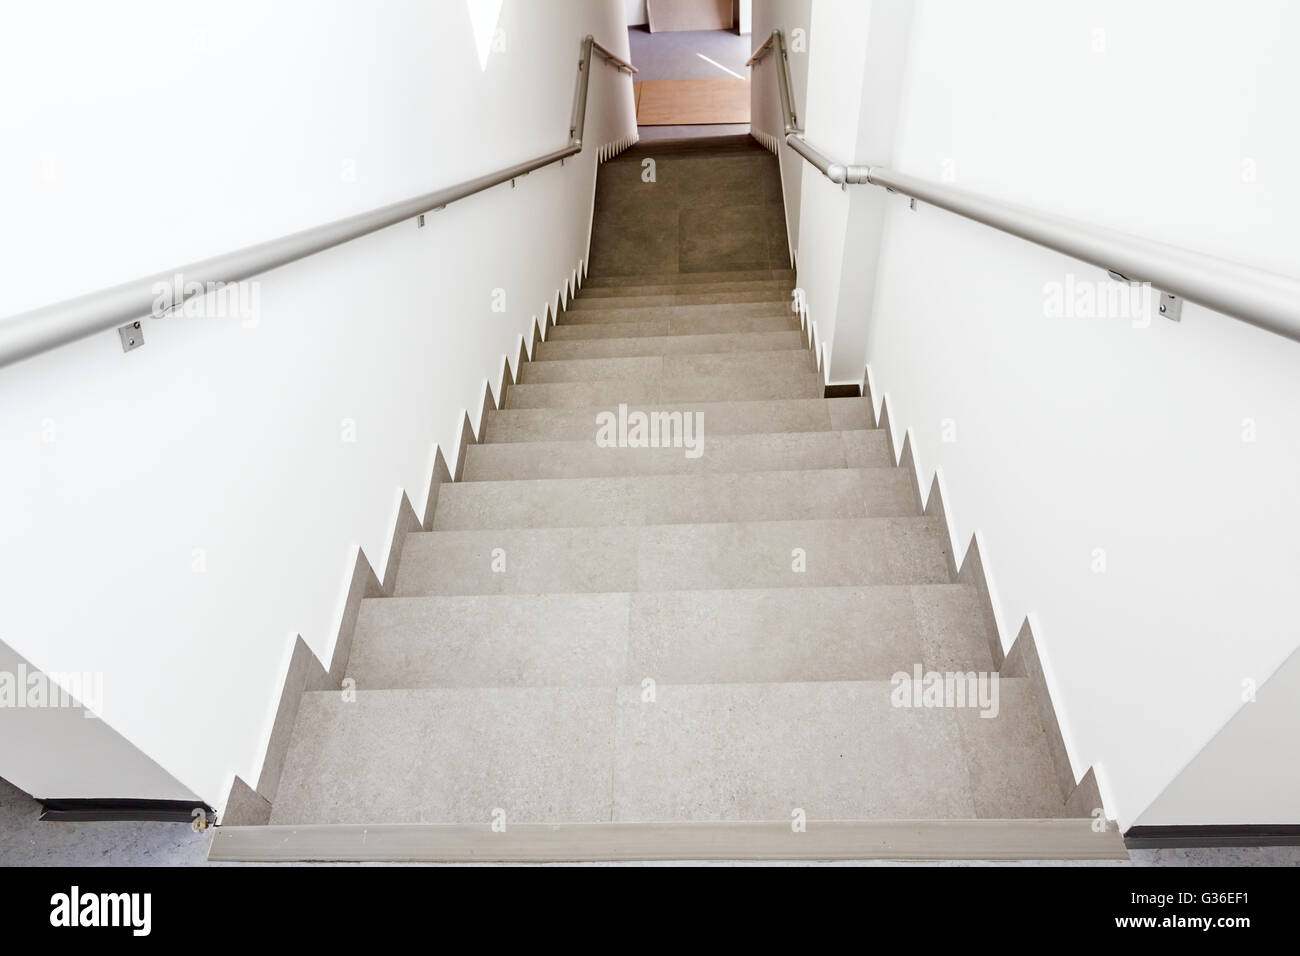 Stairway with metallic banister in a new modern building. Every building is required to have emergency stairways - Stock Image